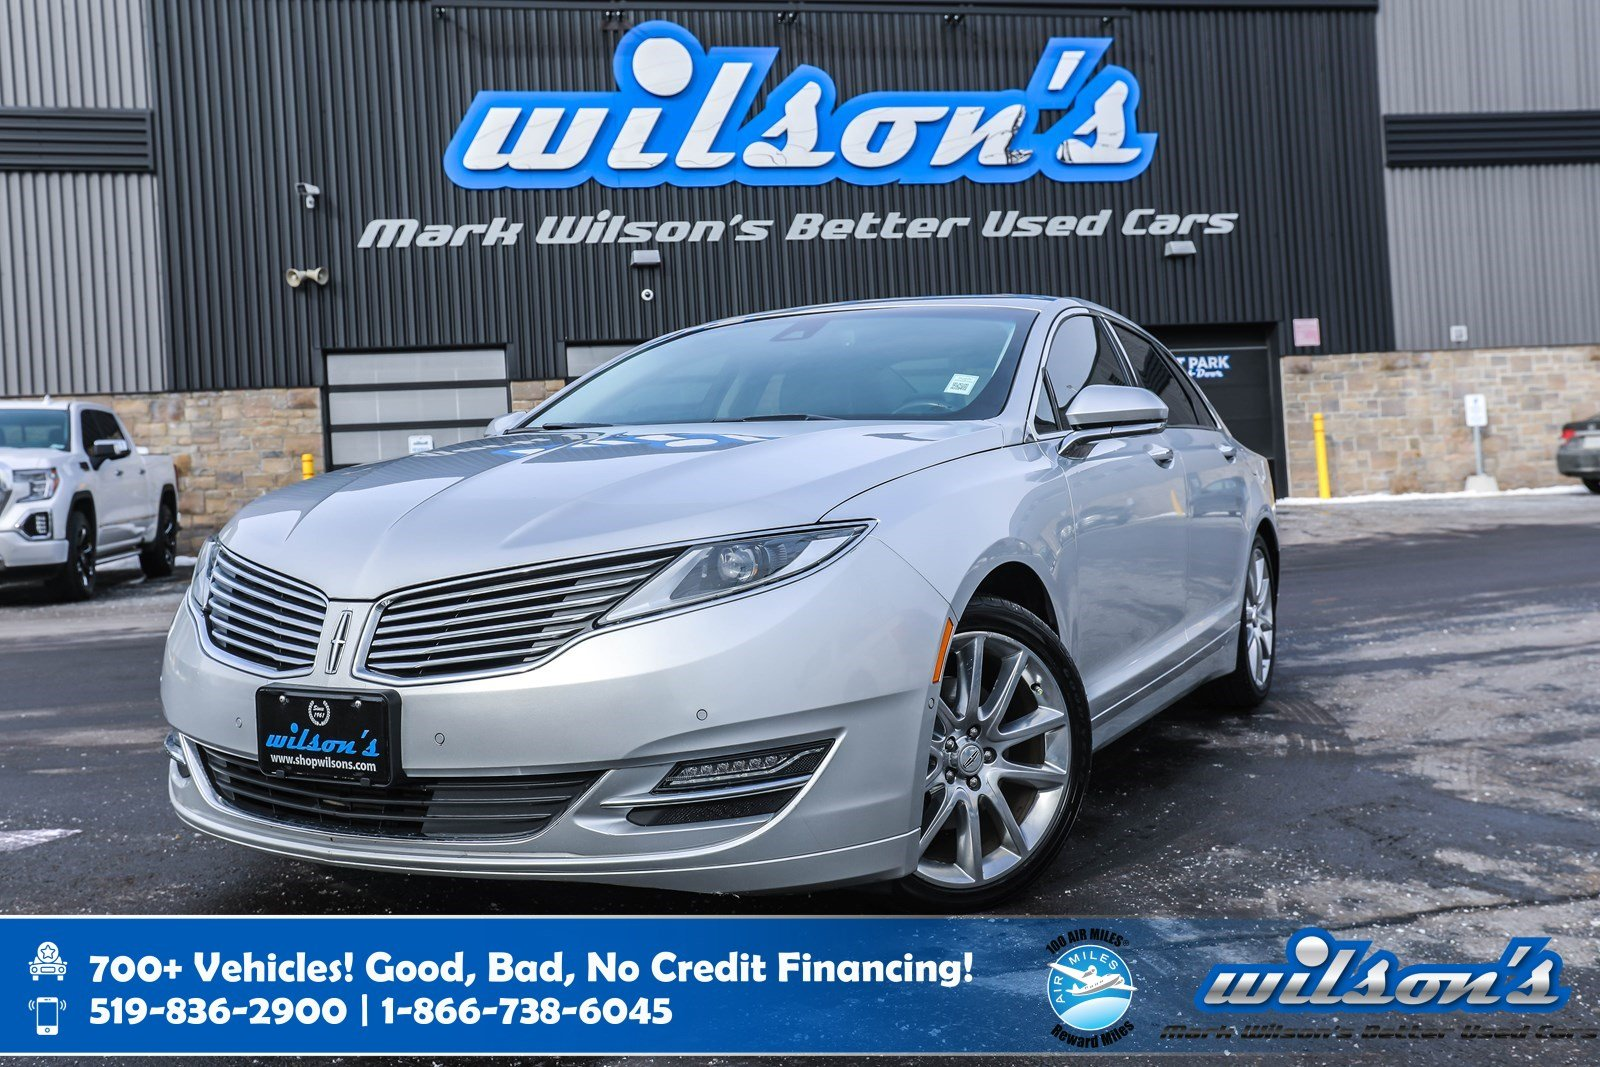 Certified Pre-Owned 2016 Lincoln MKZ AWD, Leather, Navigation, Sunroof, Heated Steering + Seats, Rear Camera, Blindspot Alert and more!